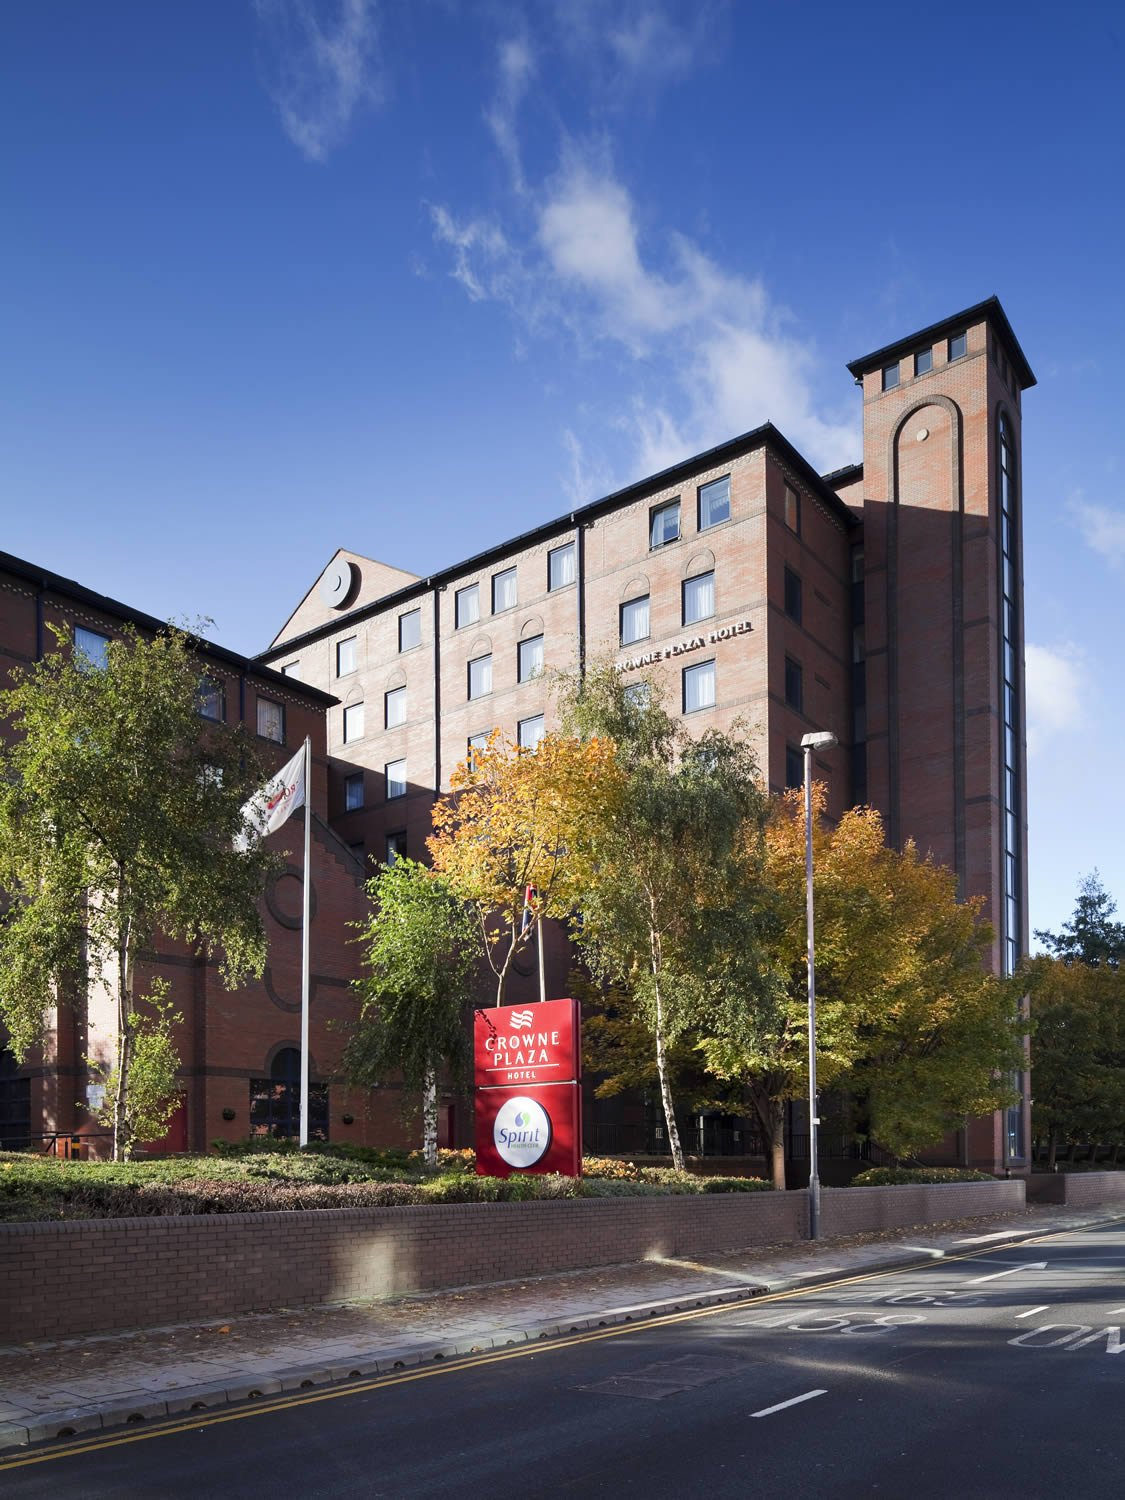 Crowne Plaza Hotel Leeds Accommodation Leeds West Yorkshire Welcome To Yorkshire